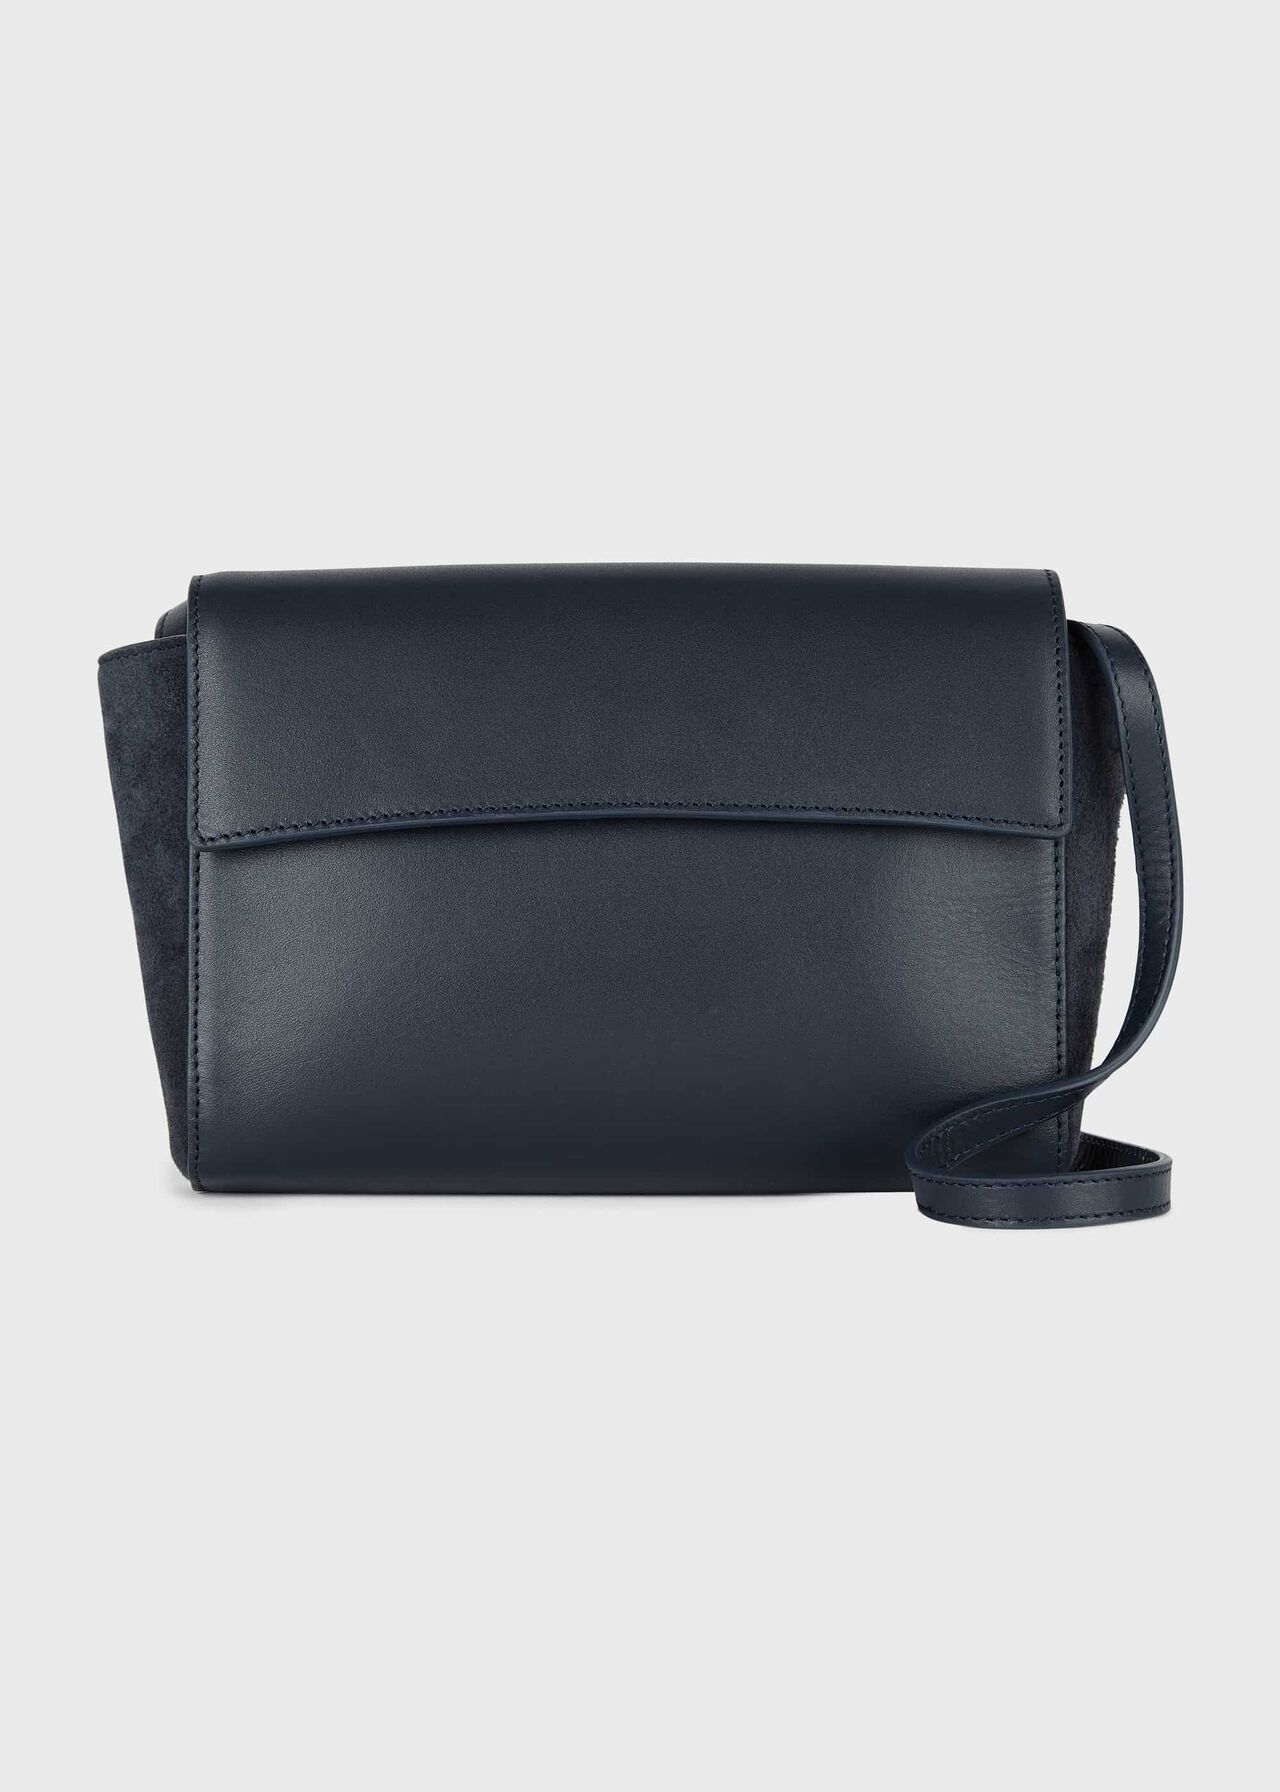 Soho Leather Cross Body Bag, French Navy, hi-res